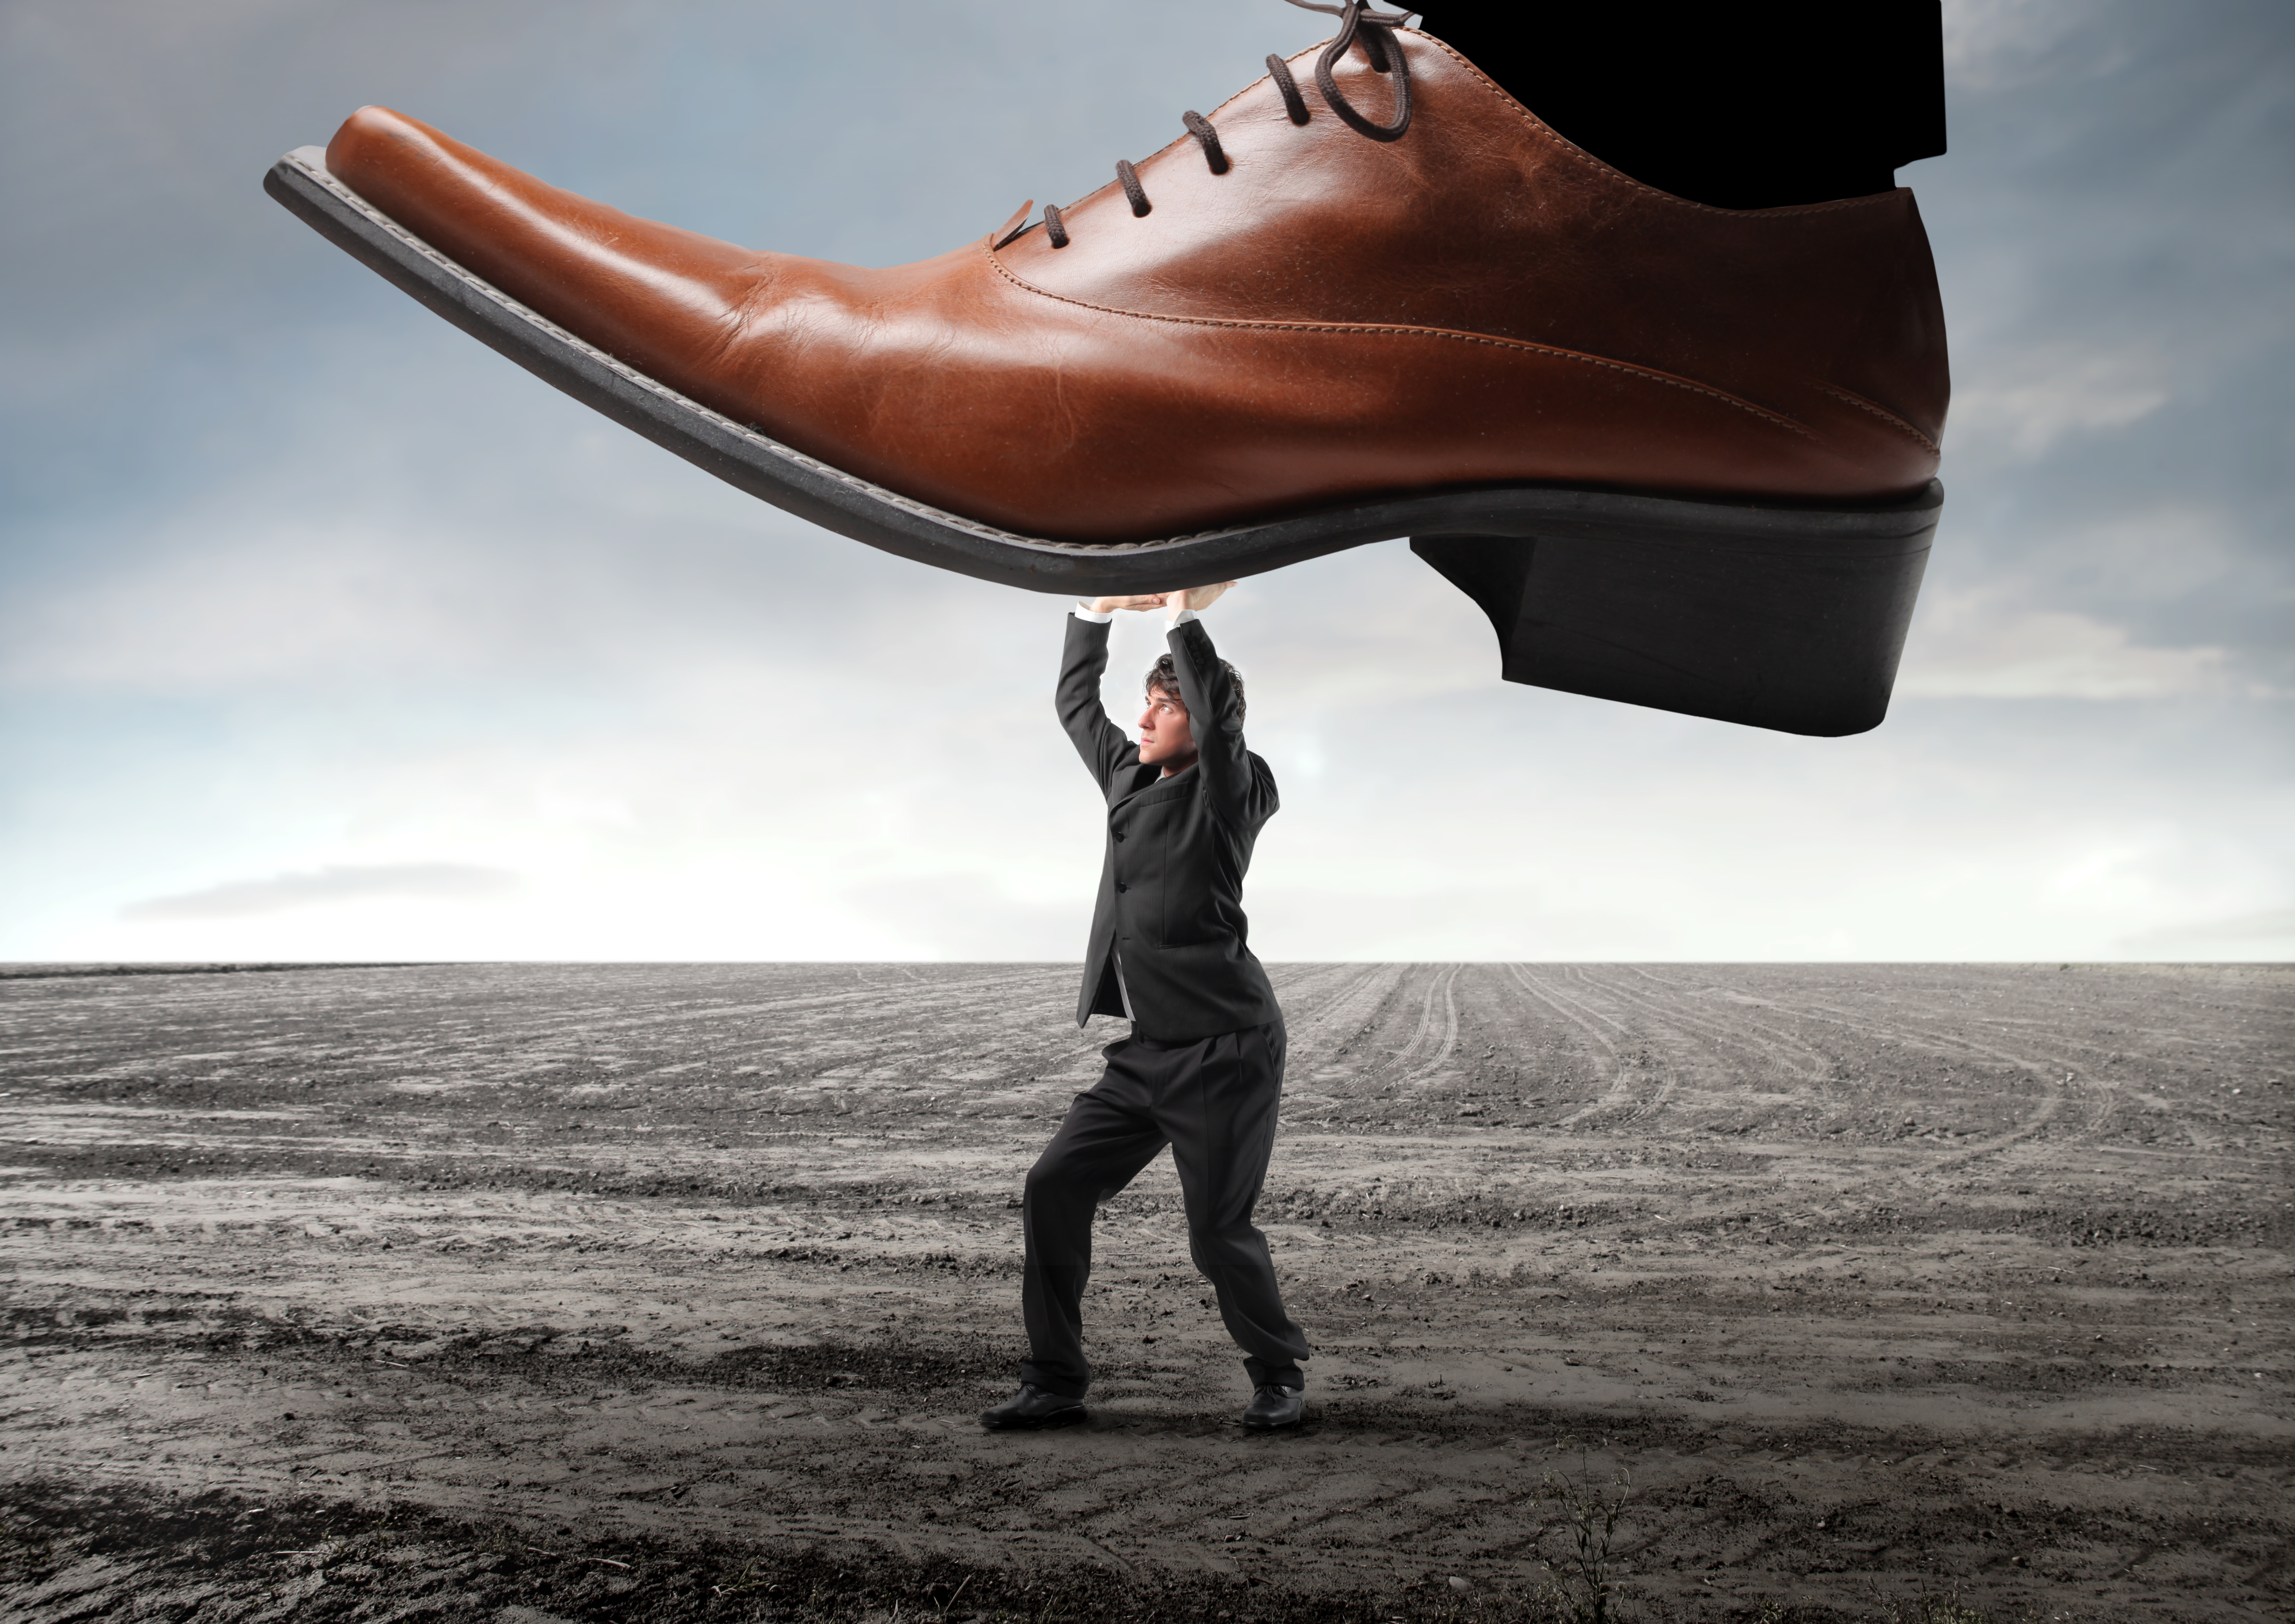 managing pushback to third party fcpa due diligence in